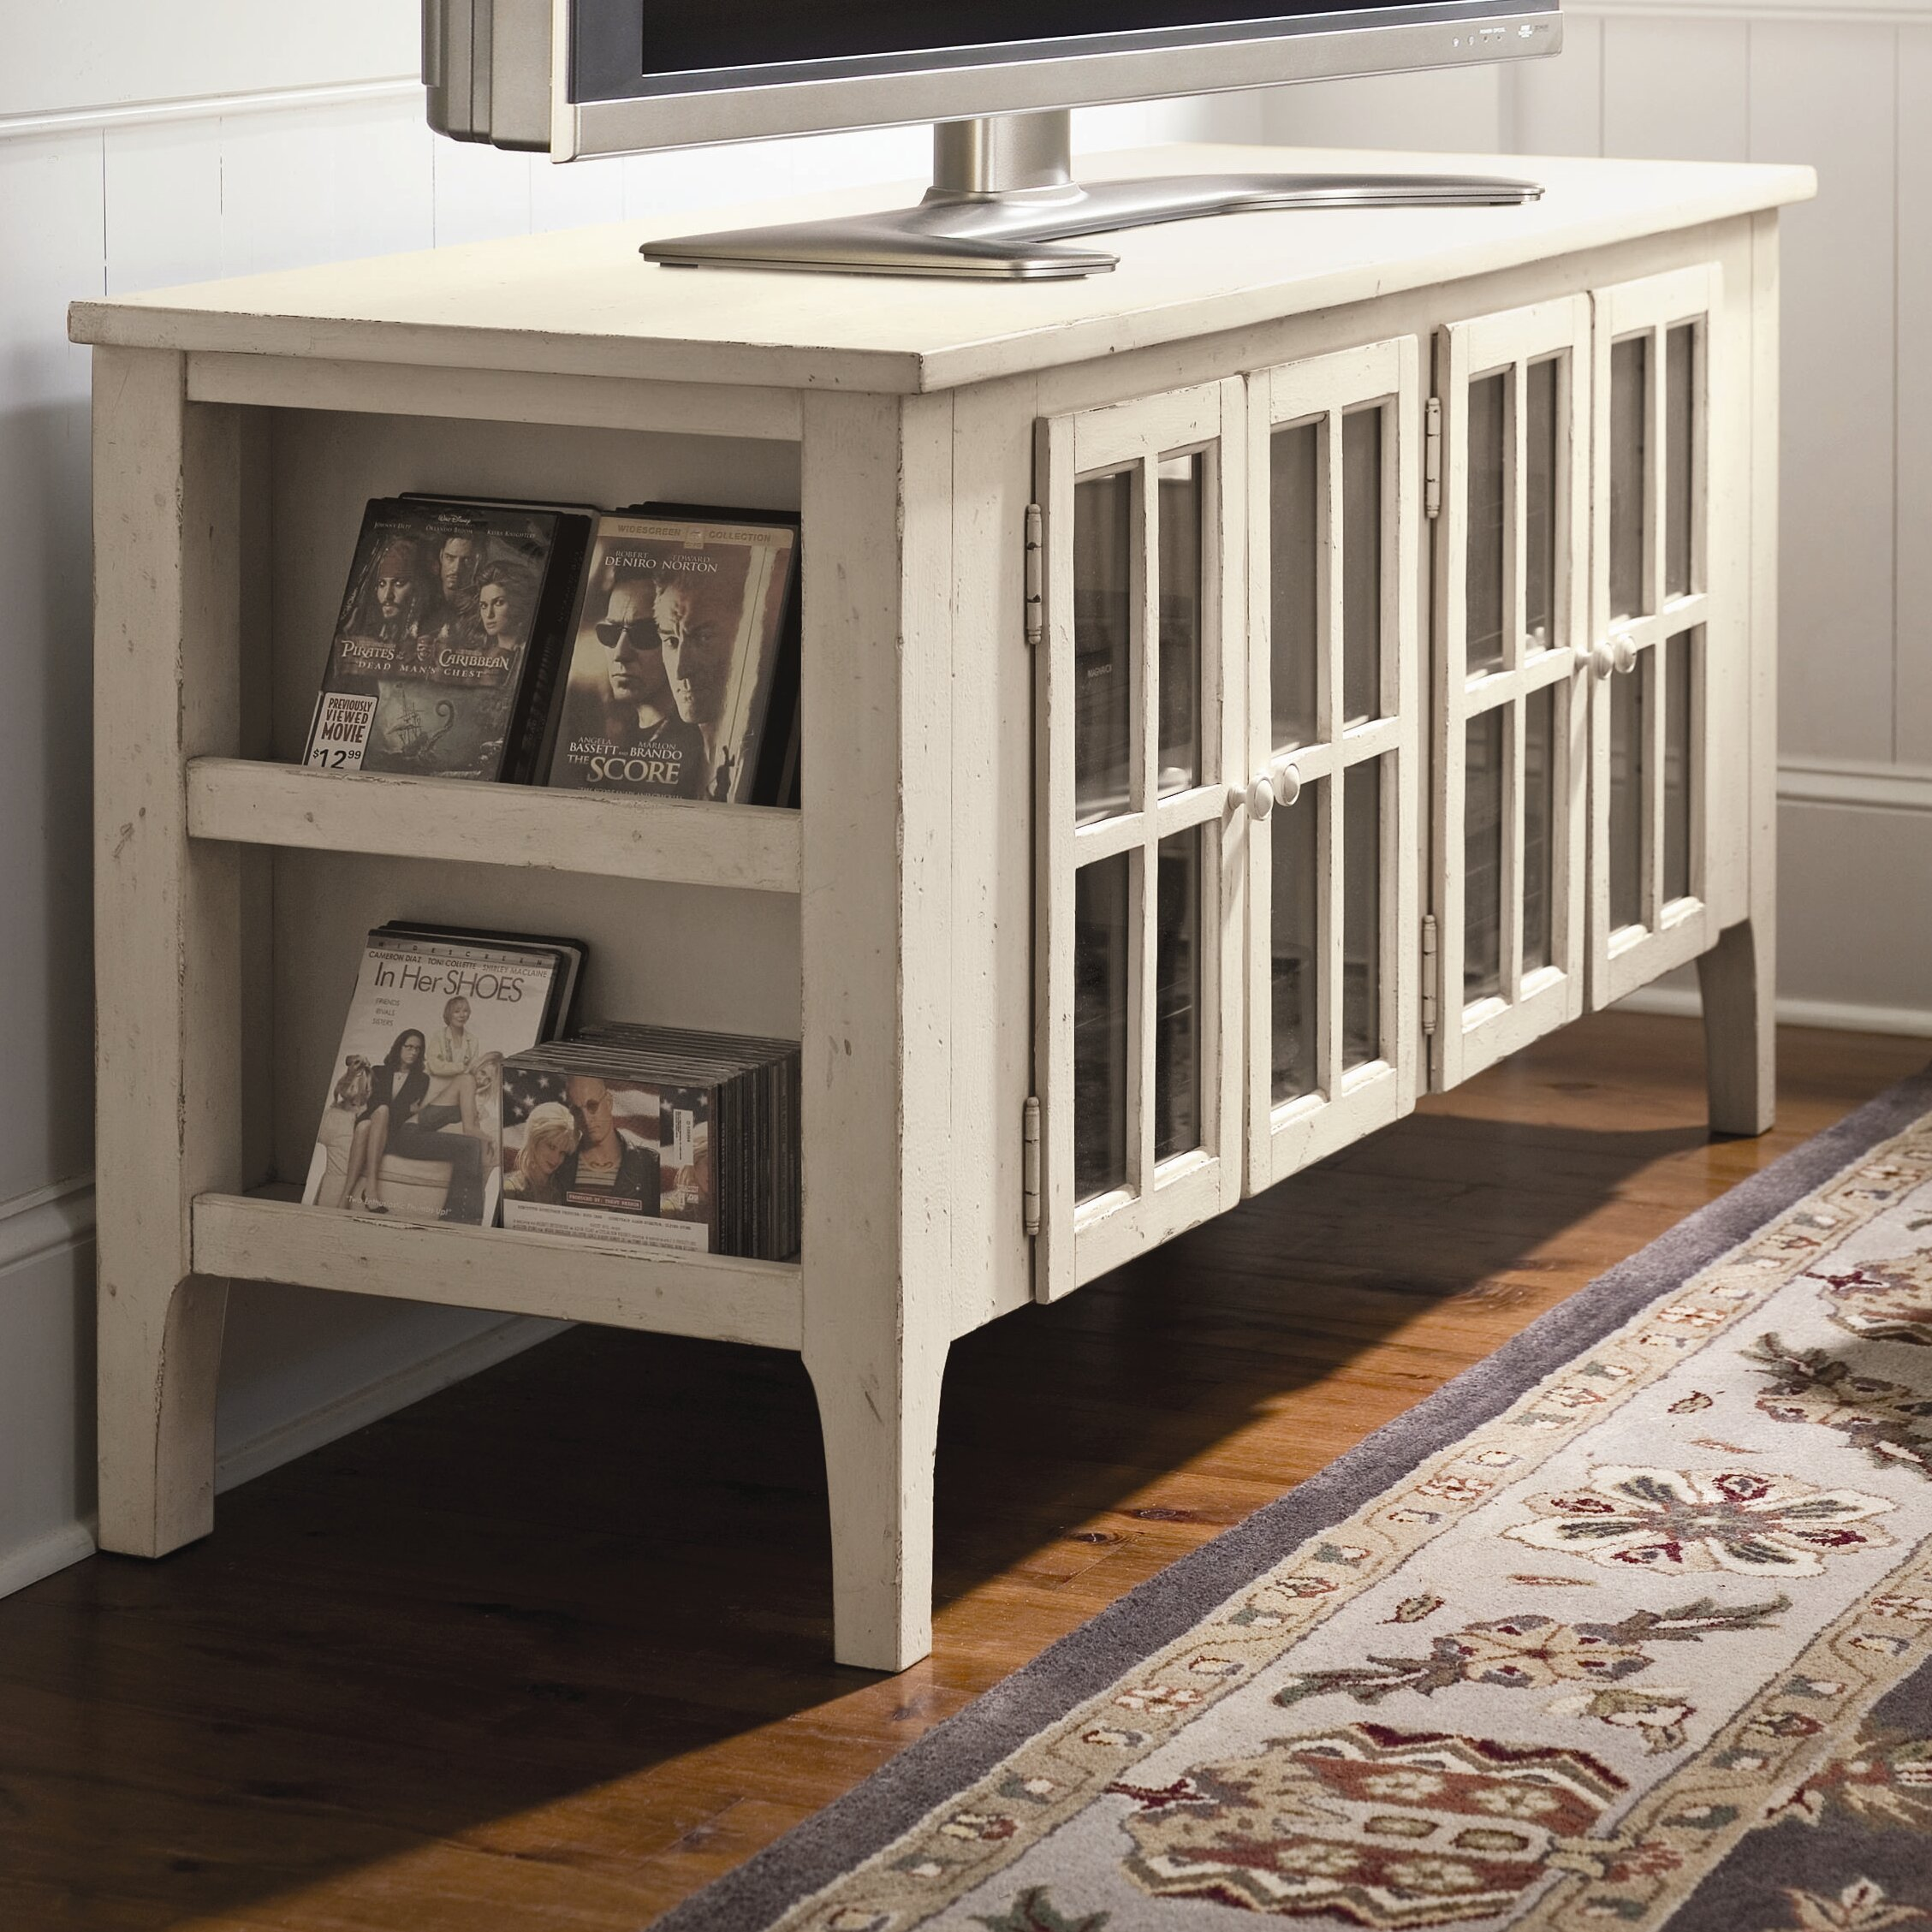 paula deen home the bag lady 39 s flat panel tv stand reviews wayfair. Black Bedroom Furniture Sets. Home Design Ideas